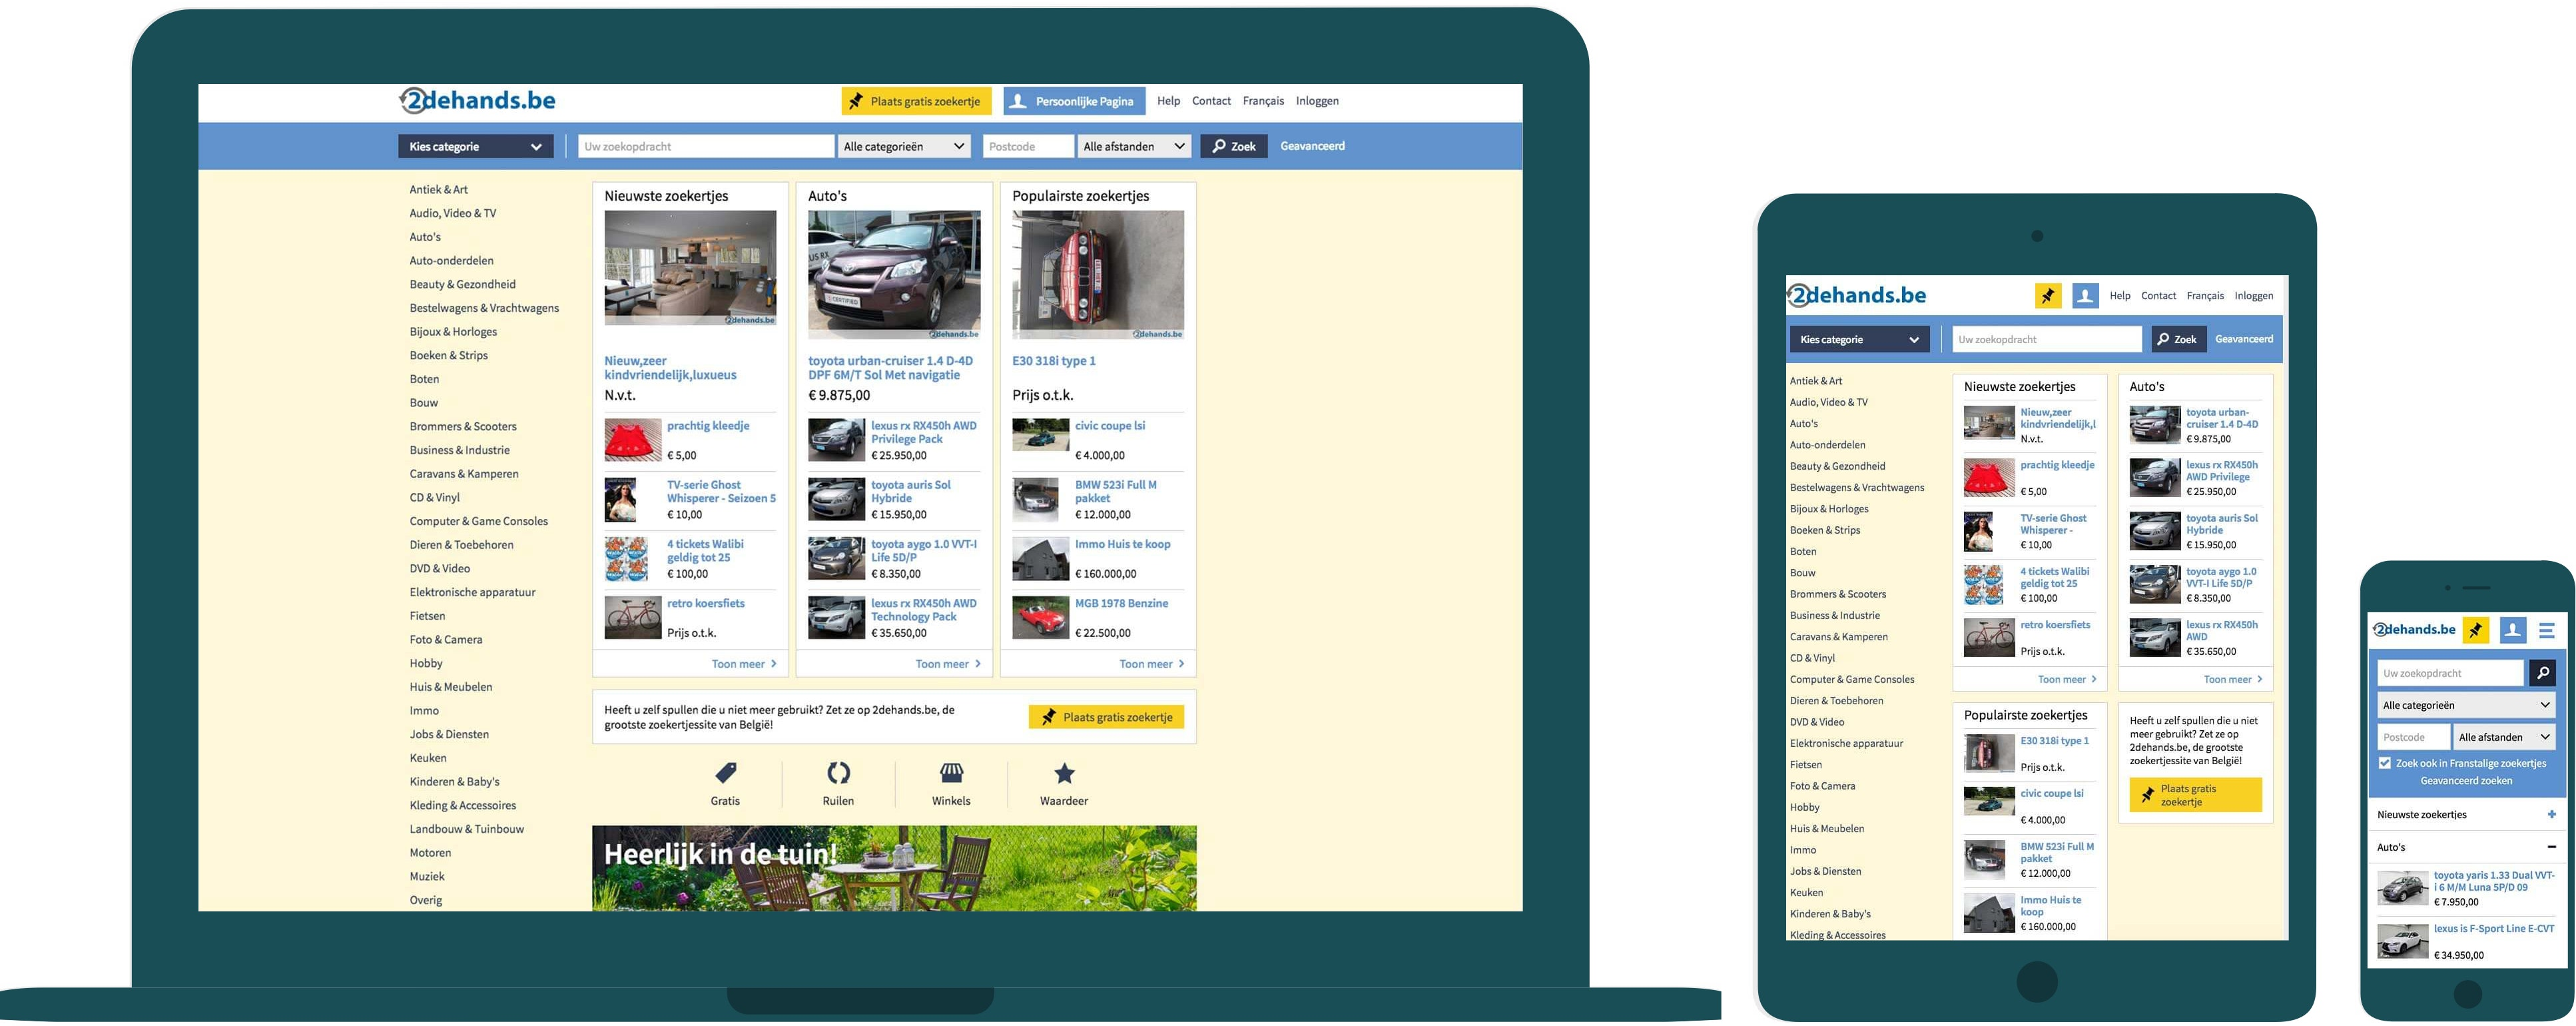 The 2dehands.be website displayed on a desktop, tablet and mobile device